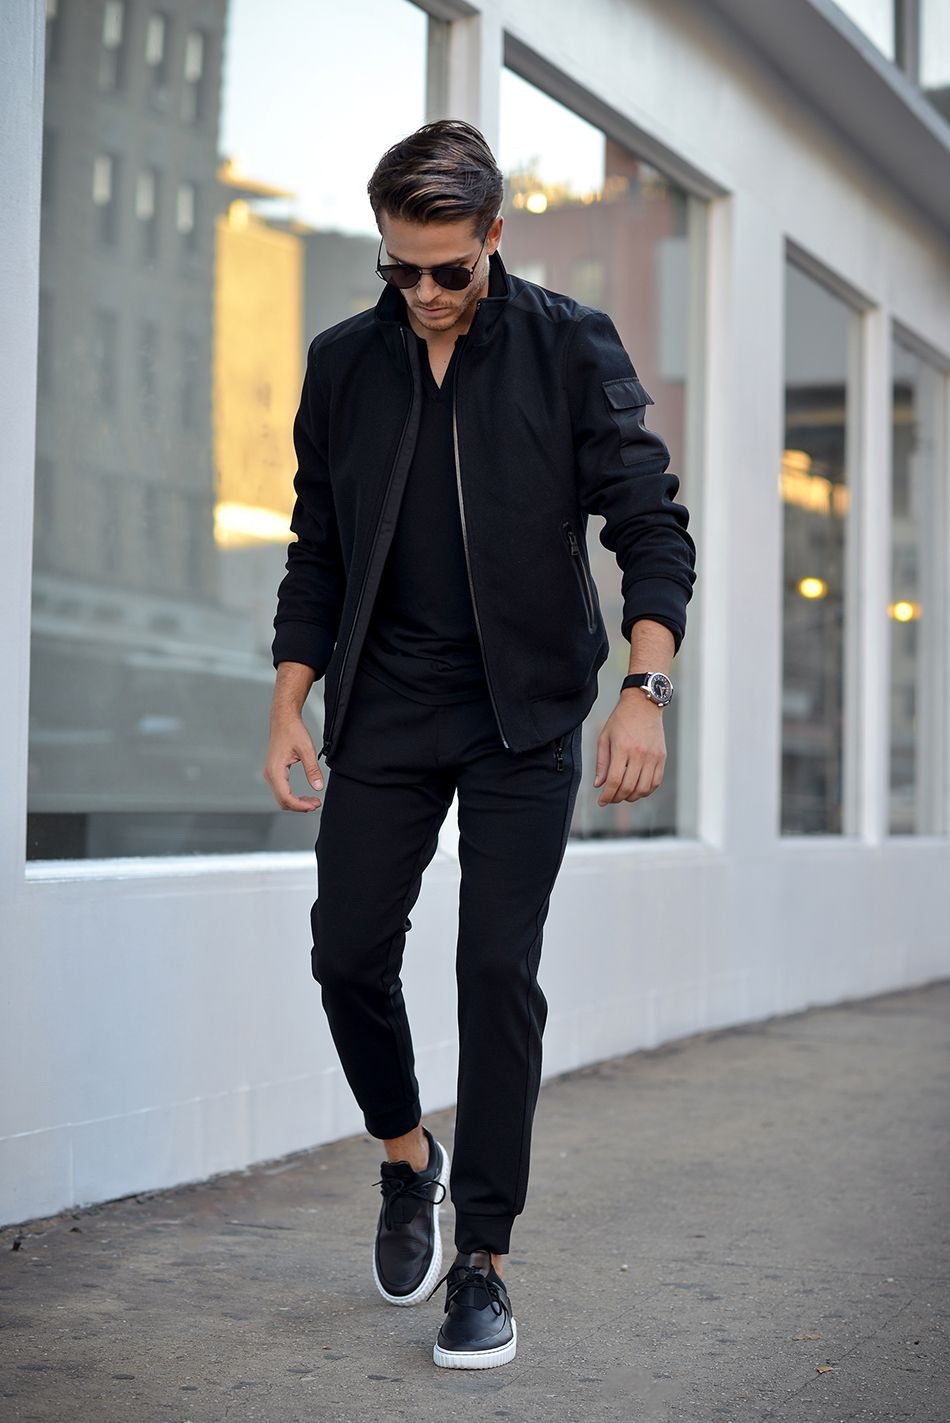 Men s Look Most popular fashion blog for Men - Men s LookBook ® Ανδρικό  Στυλ 720b2ff03e3